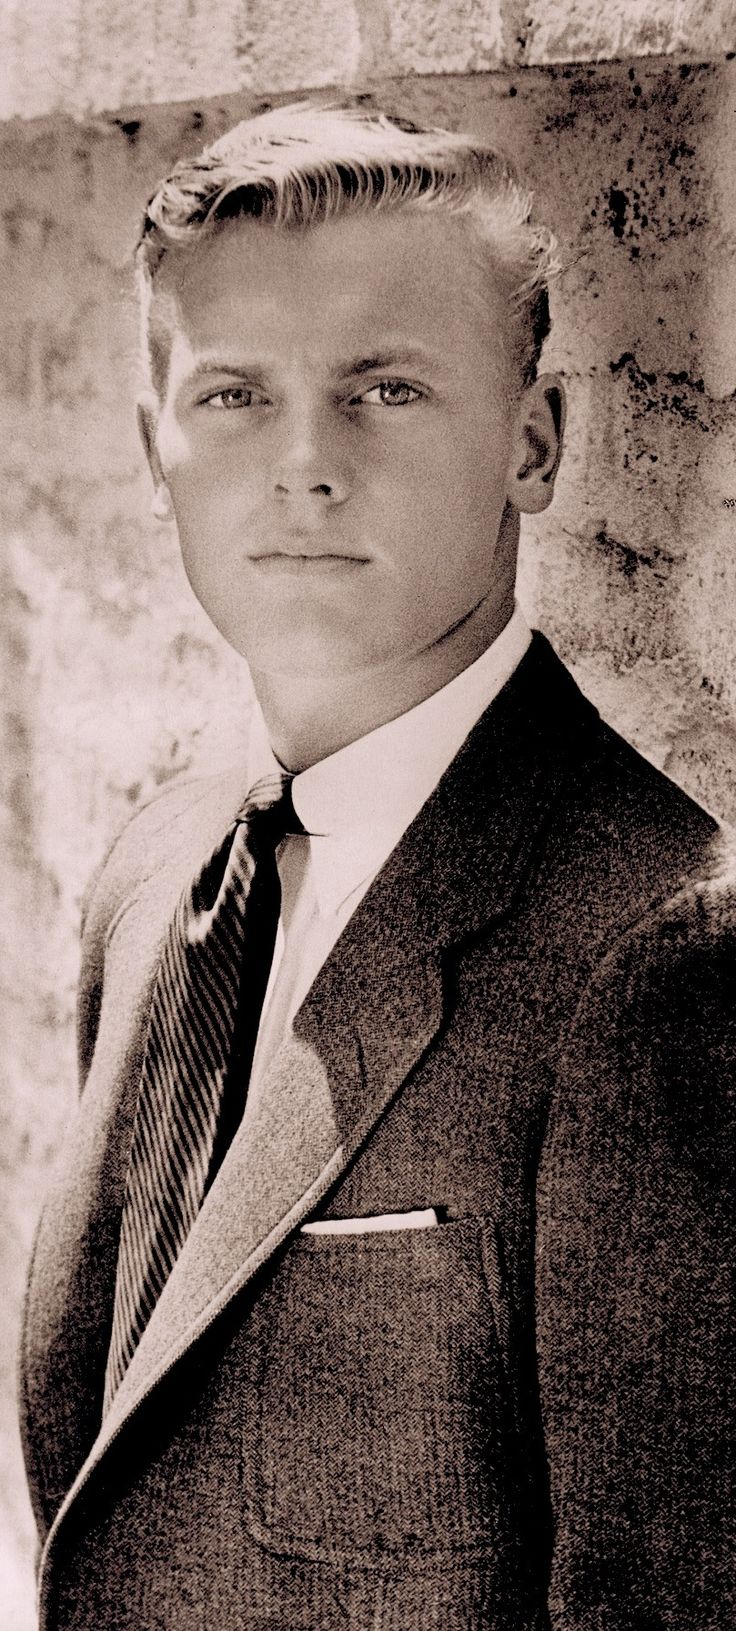 tab hunter - photo #13